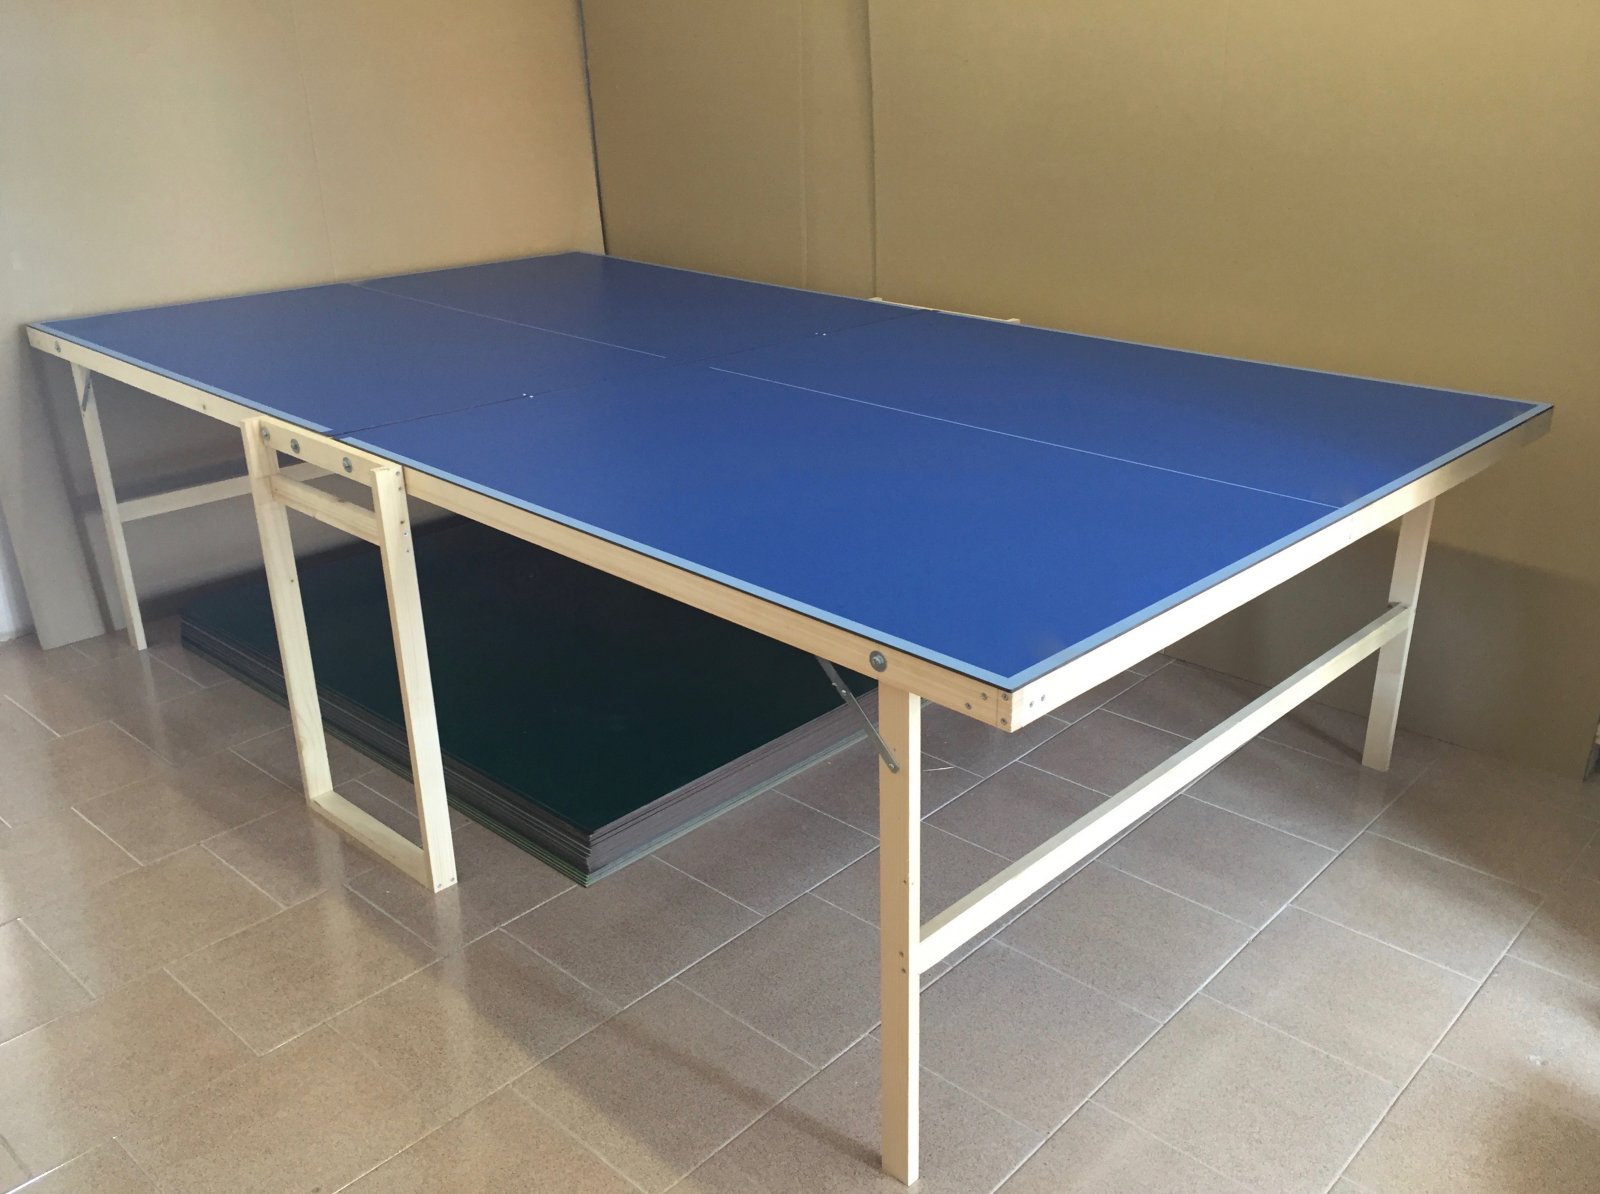 ping pong ping pong outdoor tavolo tennis table pieghevole